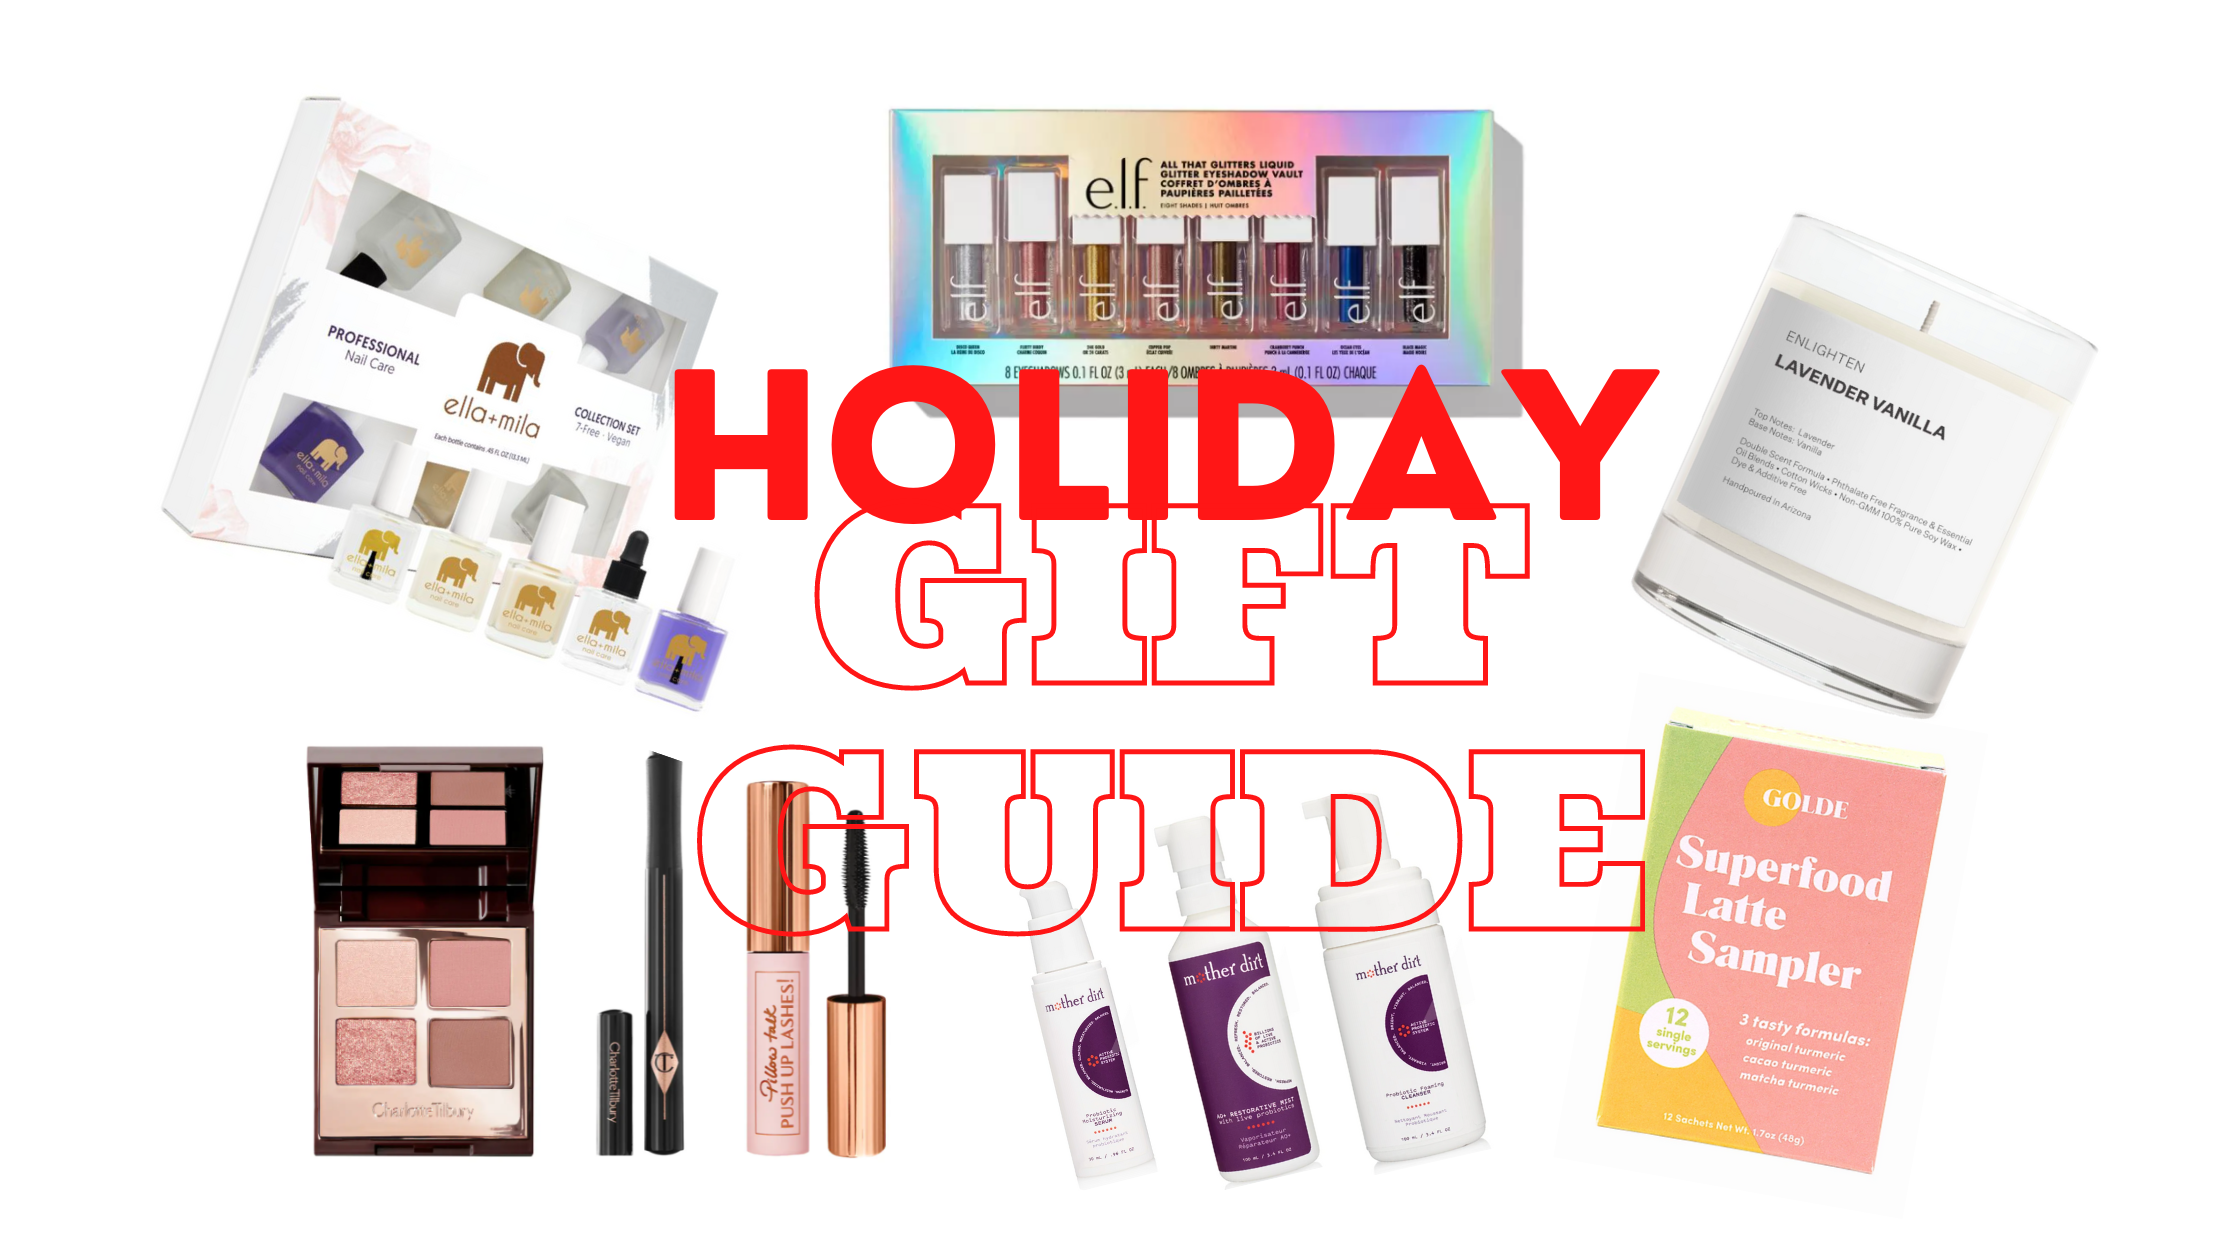 Our Holiday Gift Guide